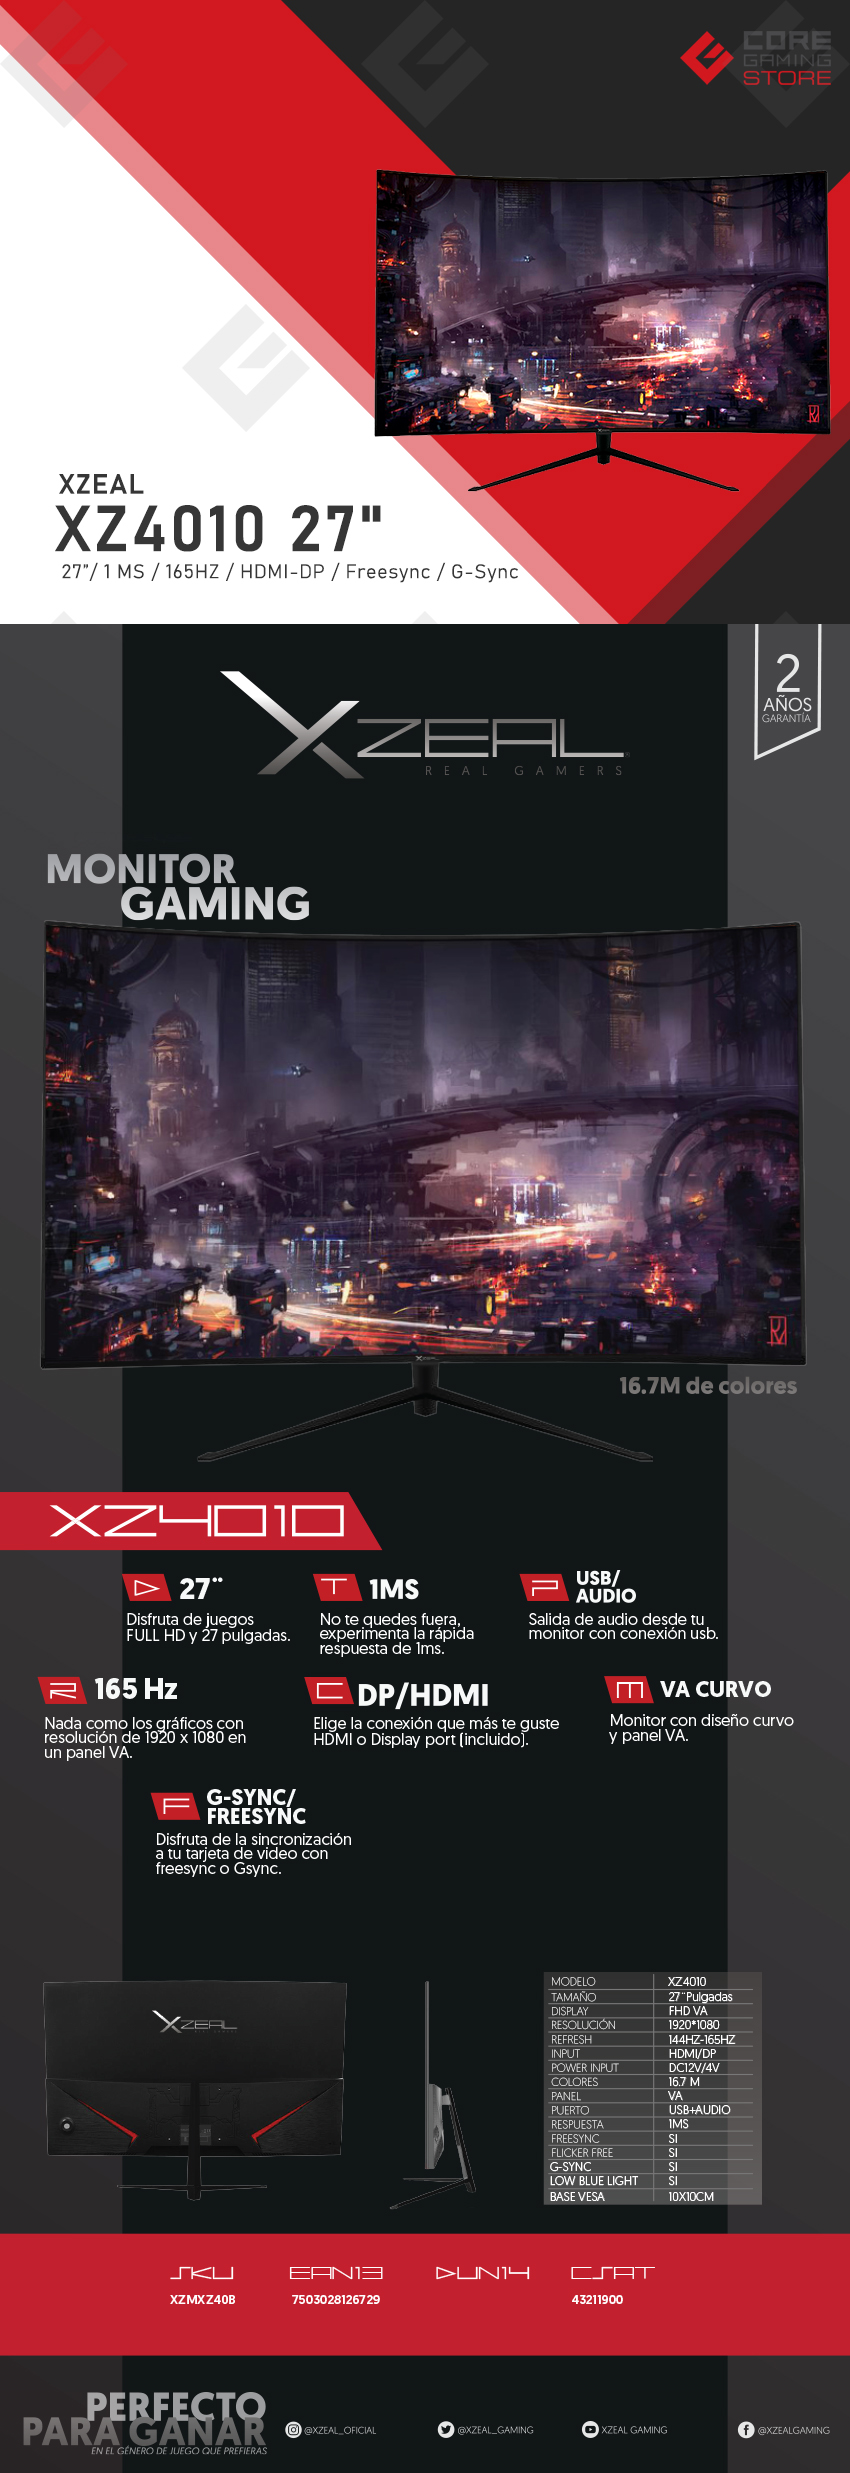 "Monitor Xzeal XZ4010, 27"", 1920 x 1080, HDMI, Displayport, 1MS, 165Hz, Freesync, G-Sync"